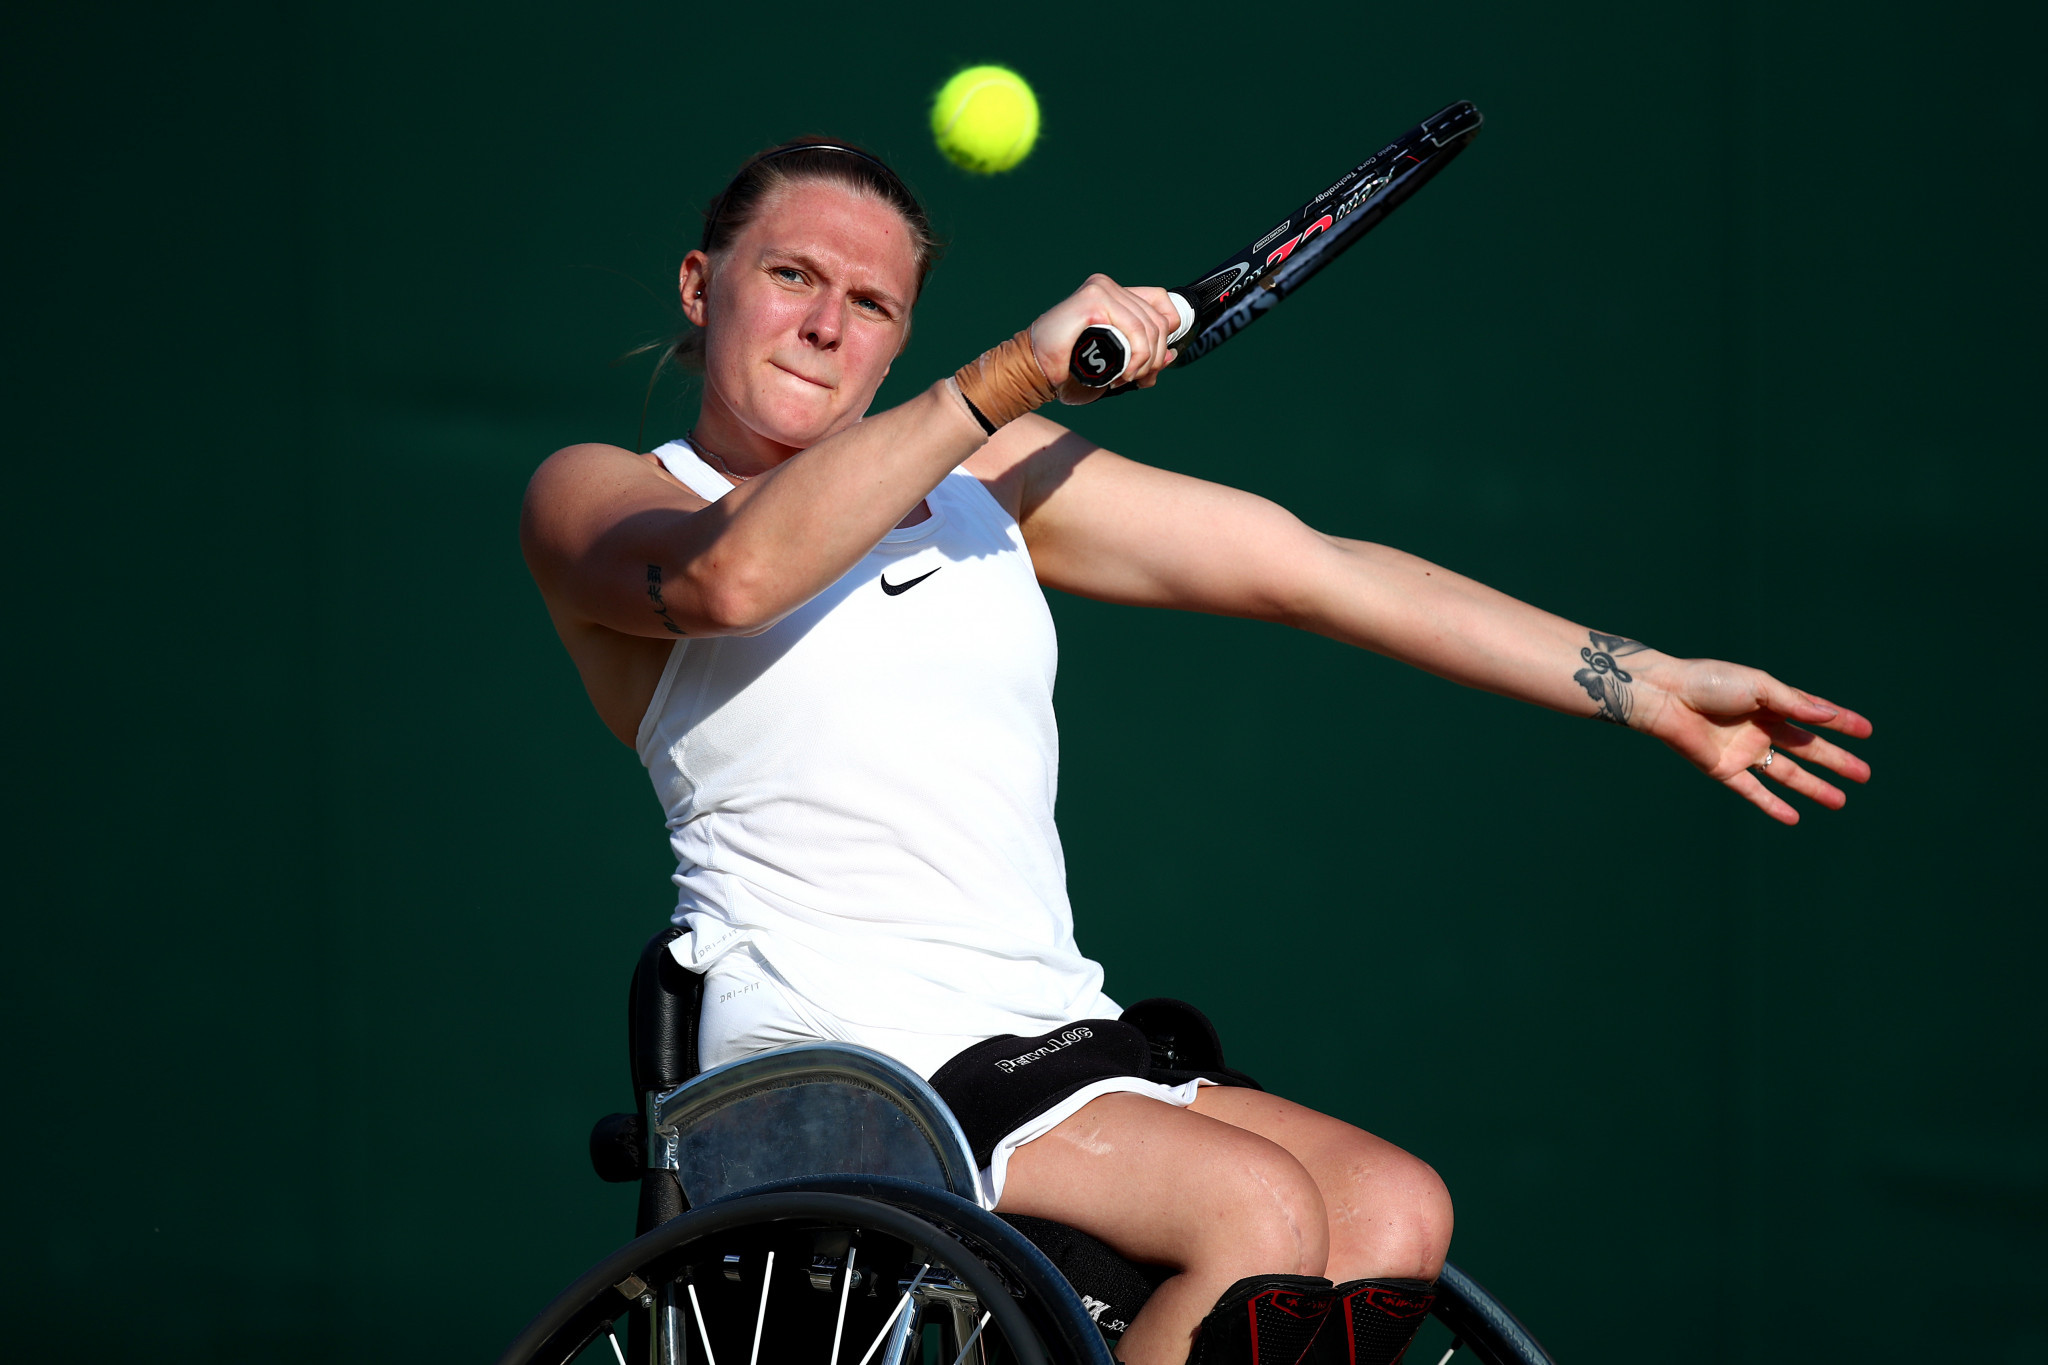 Jordanne Whiley has won all four doubles Grand Slams in 2014 ©Getty Images